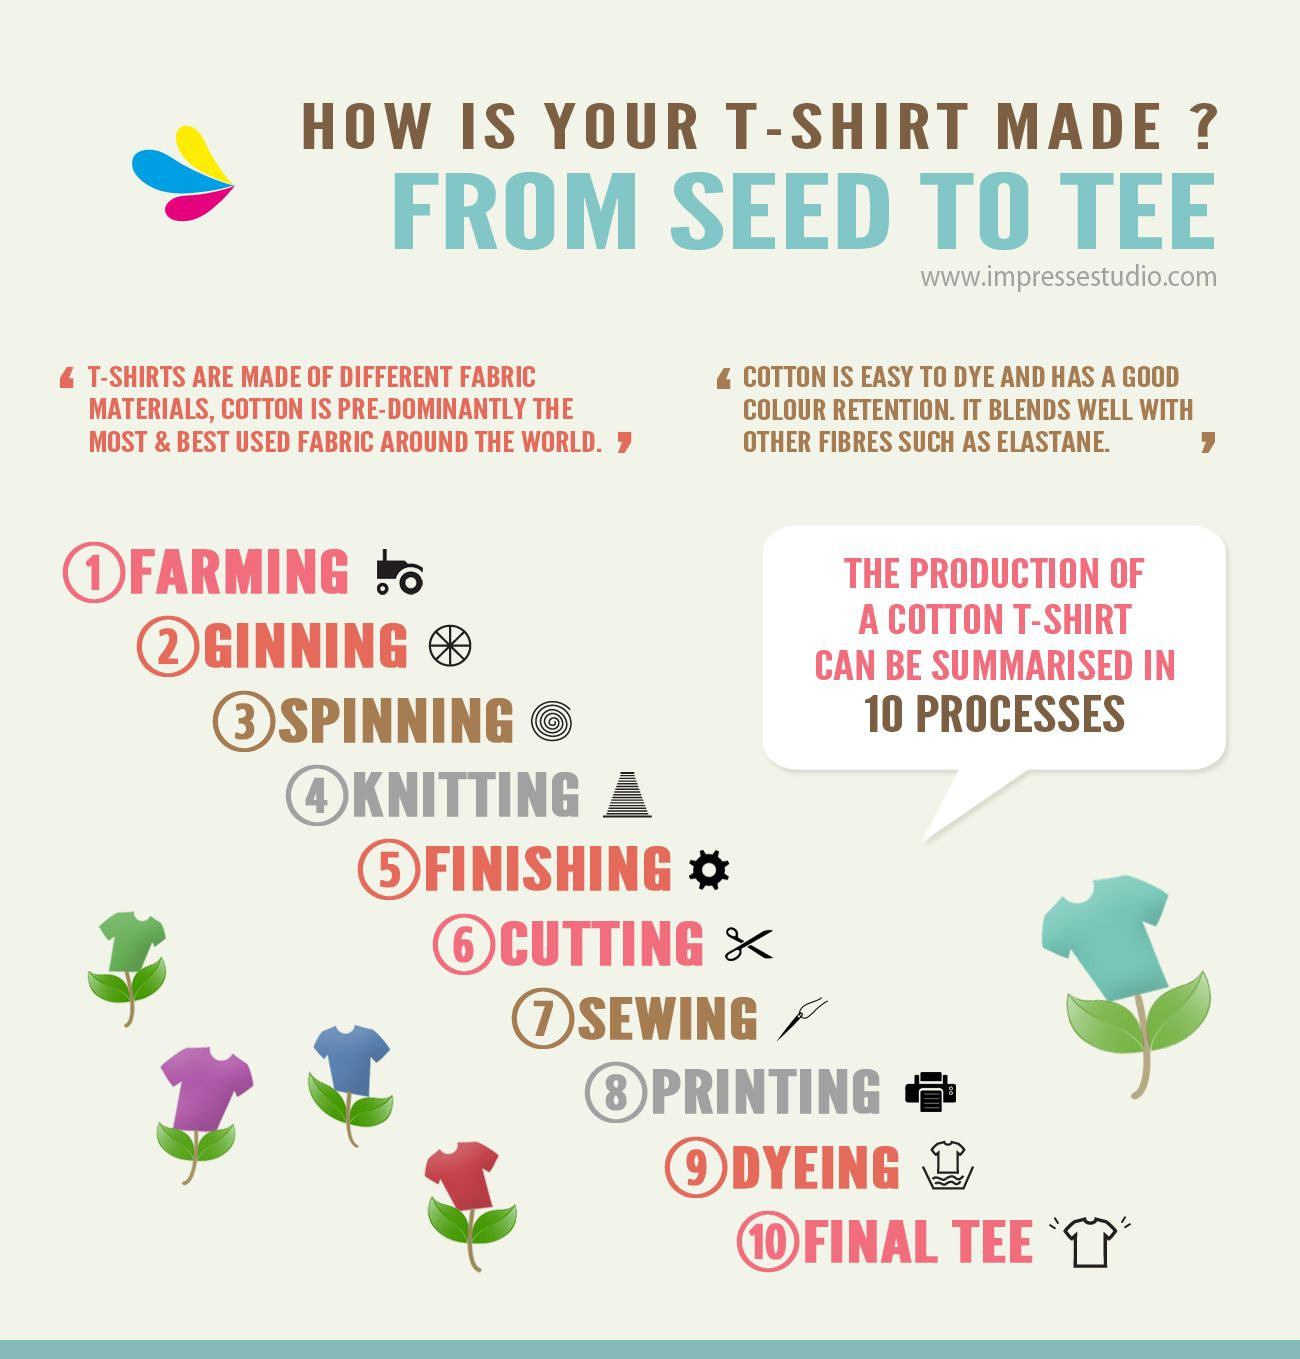 10 Steps Of Making A T Shirt The Production Of A Cotton T